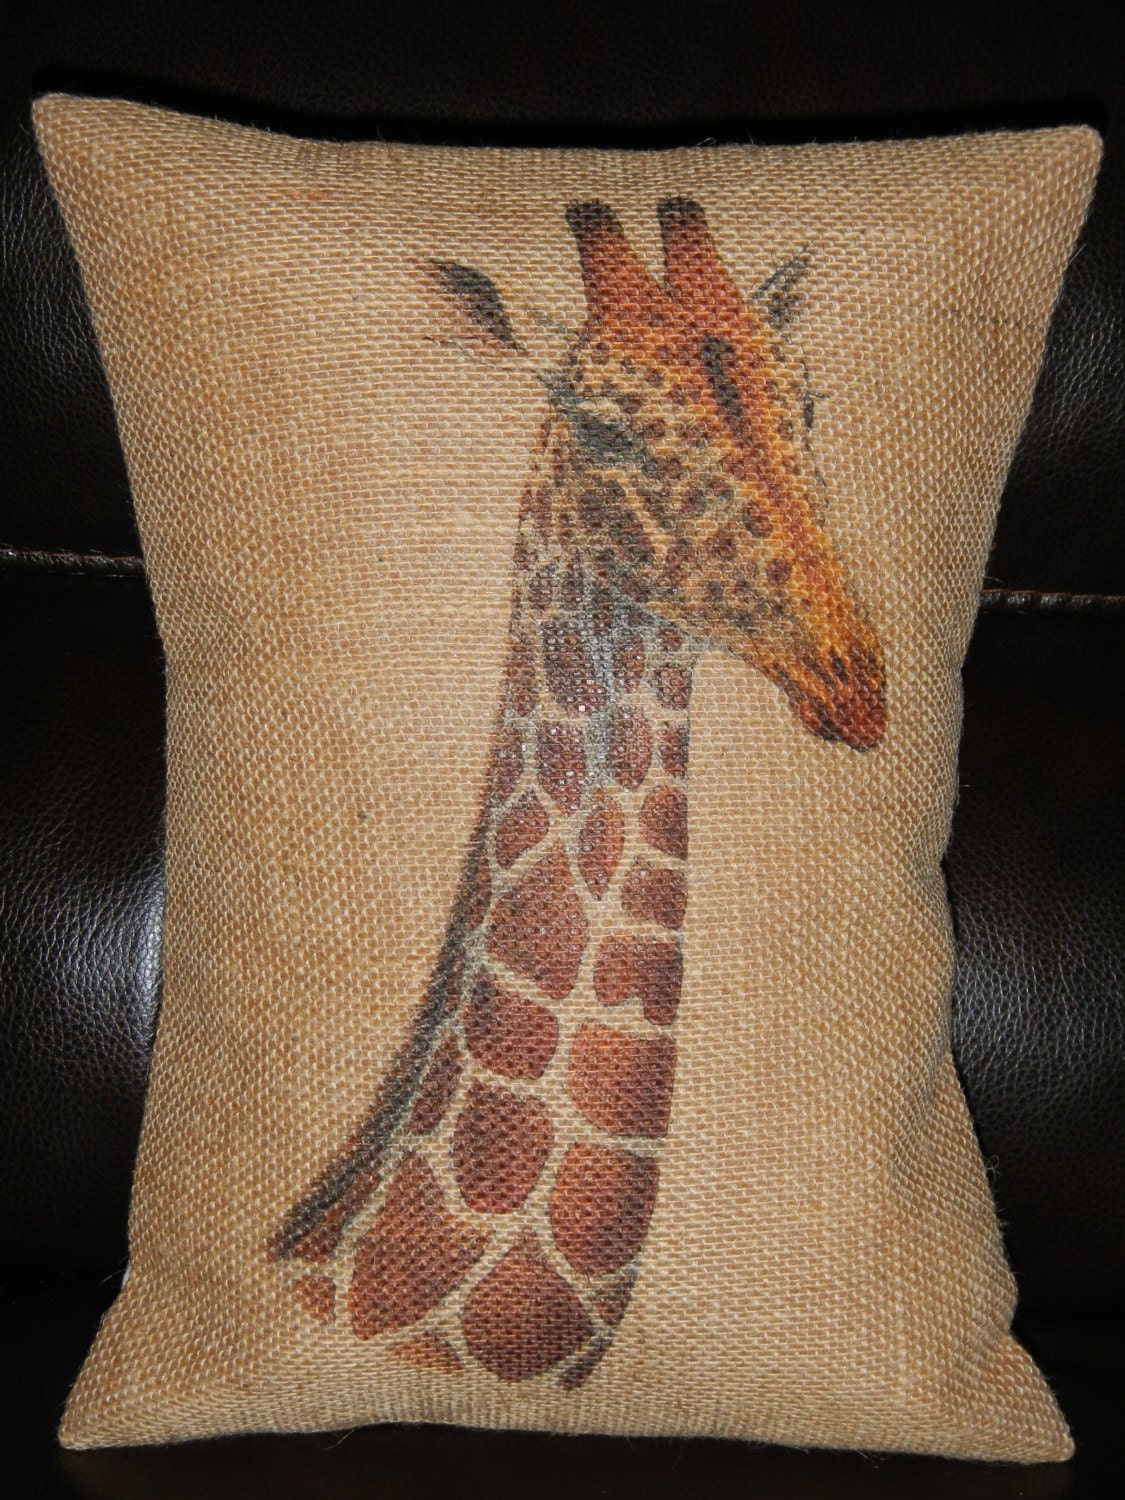 Giraffe Burlap Pillow Rustic giraffe by PolkadotApplePillows